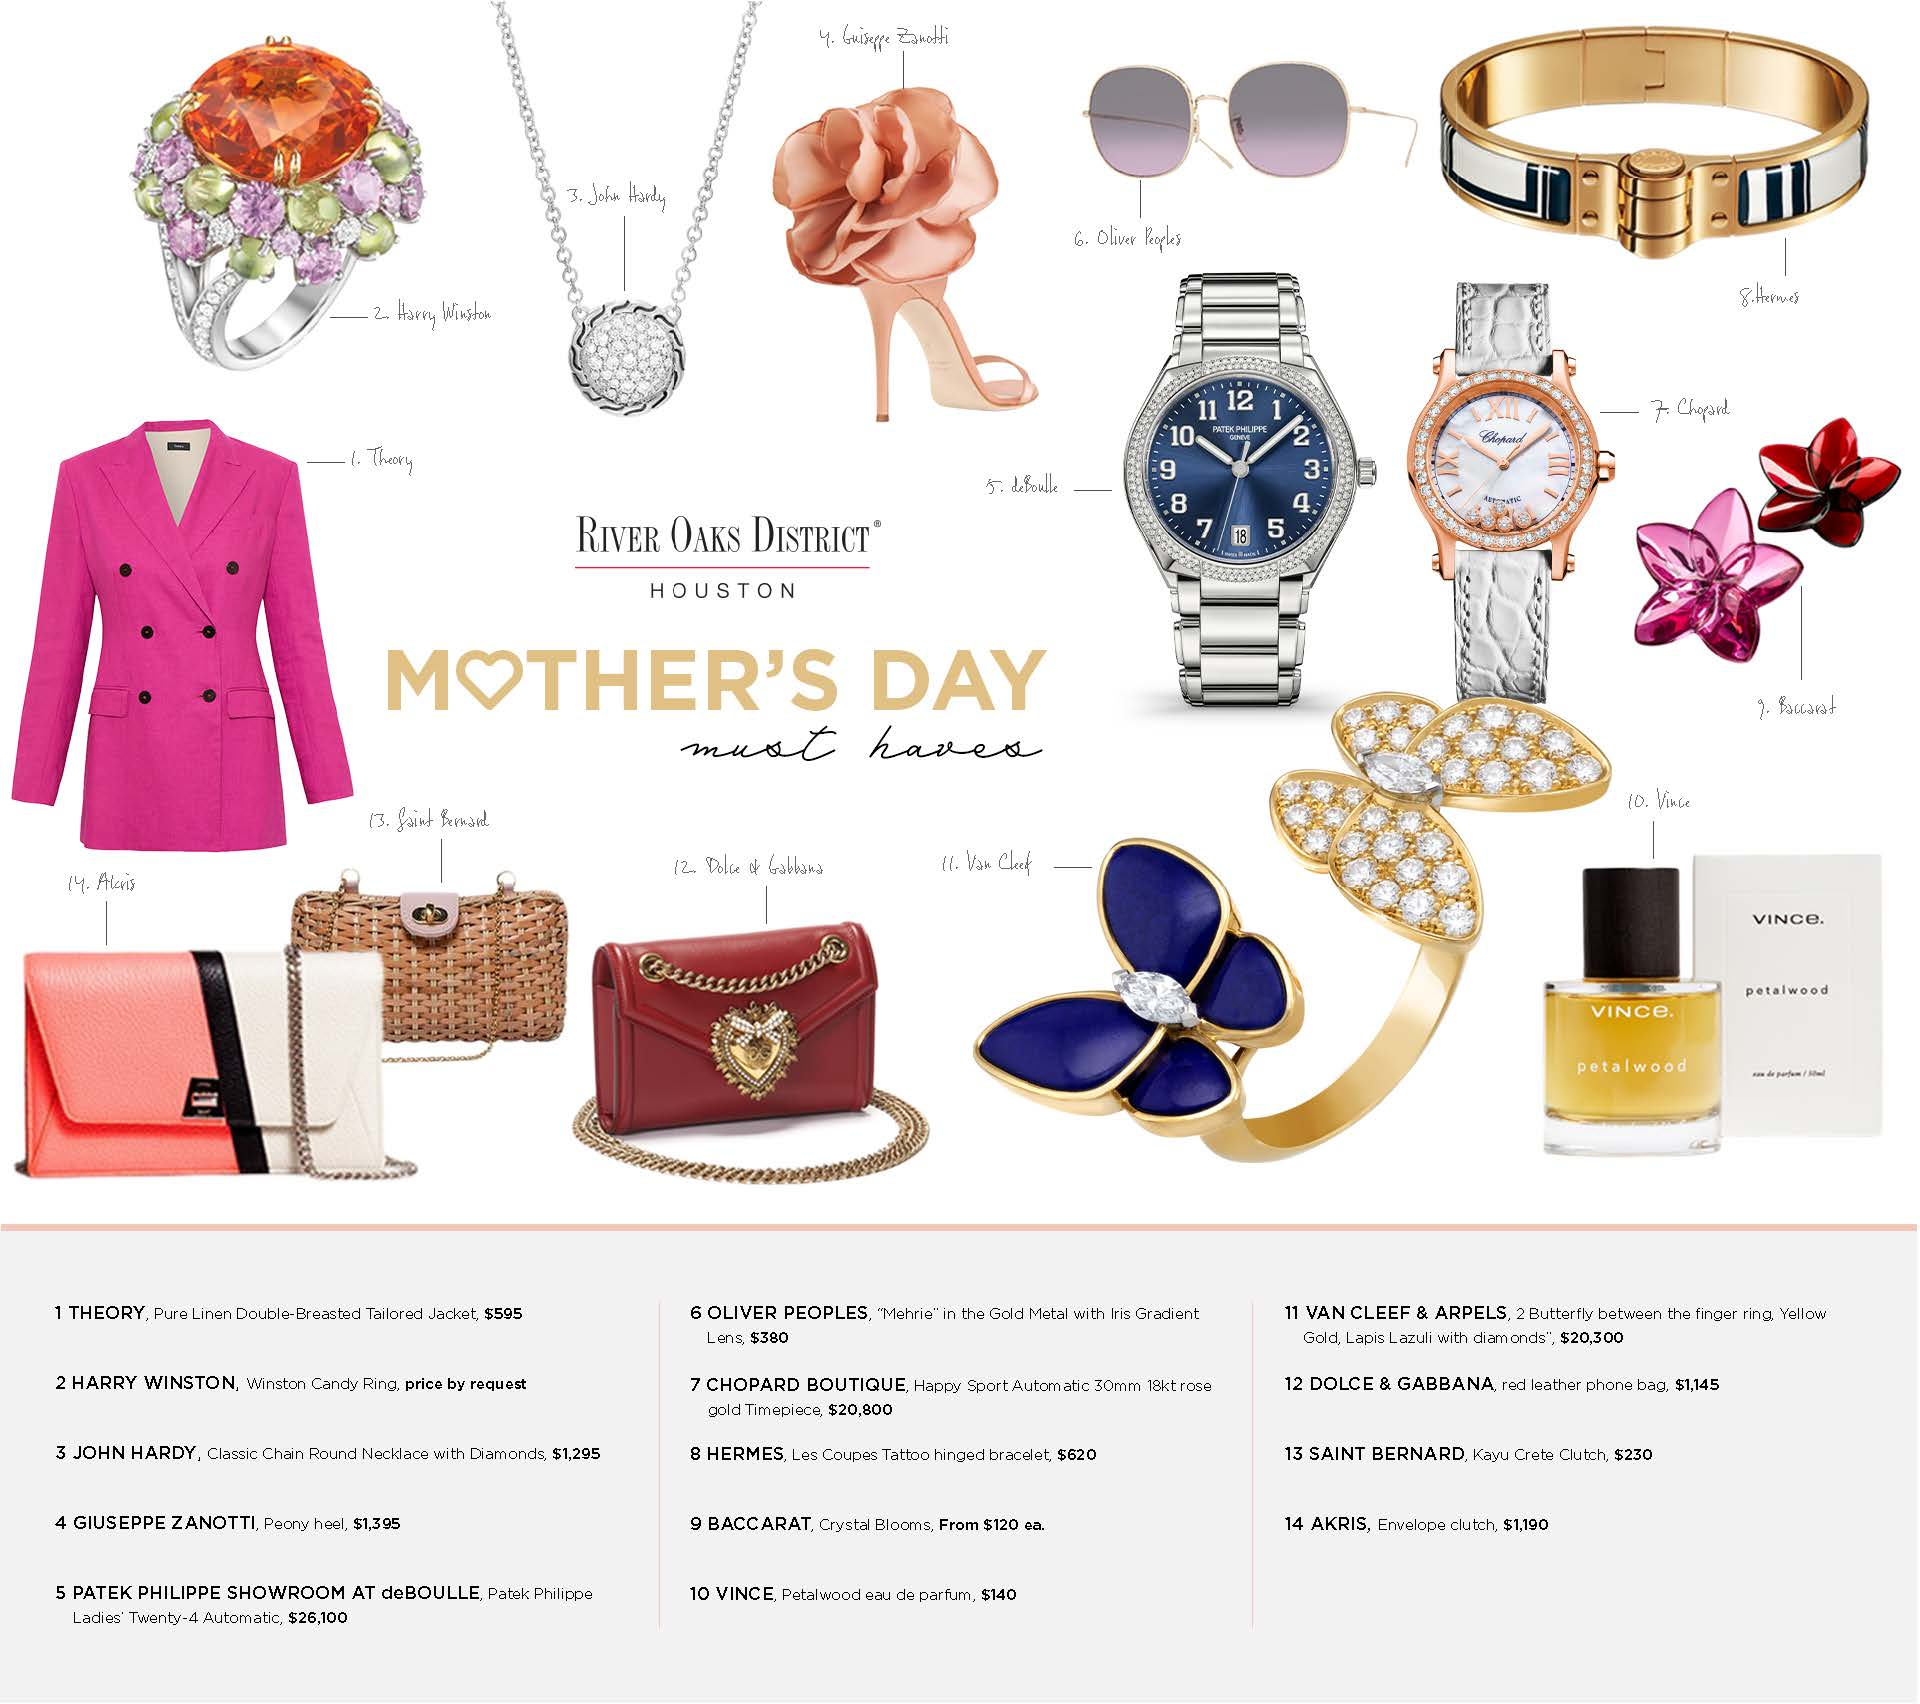 Molthers Day Gift Guide FINAL.jpg